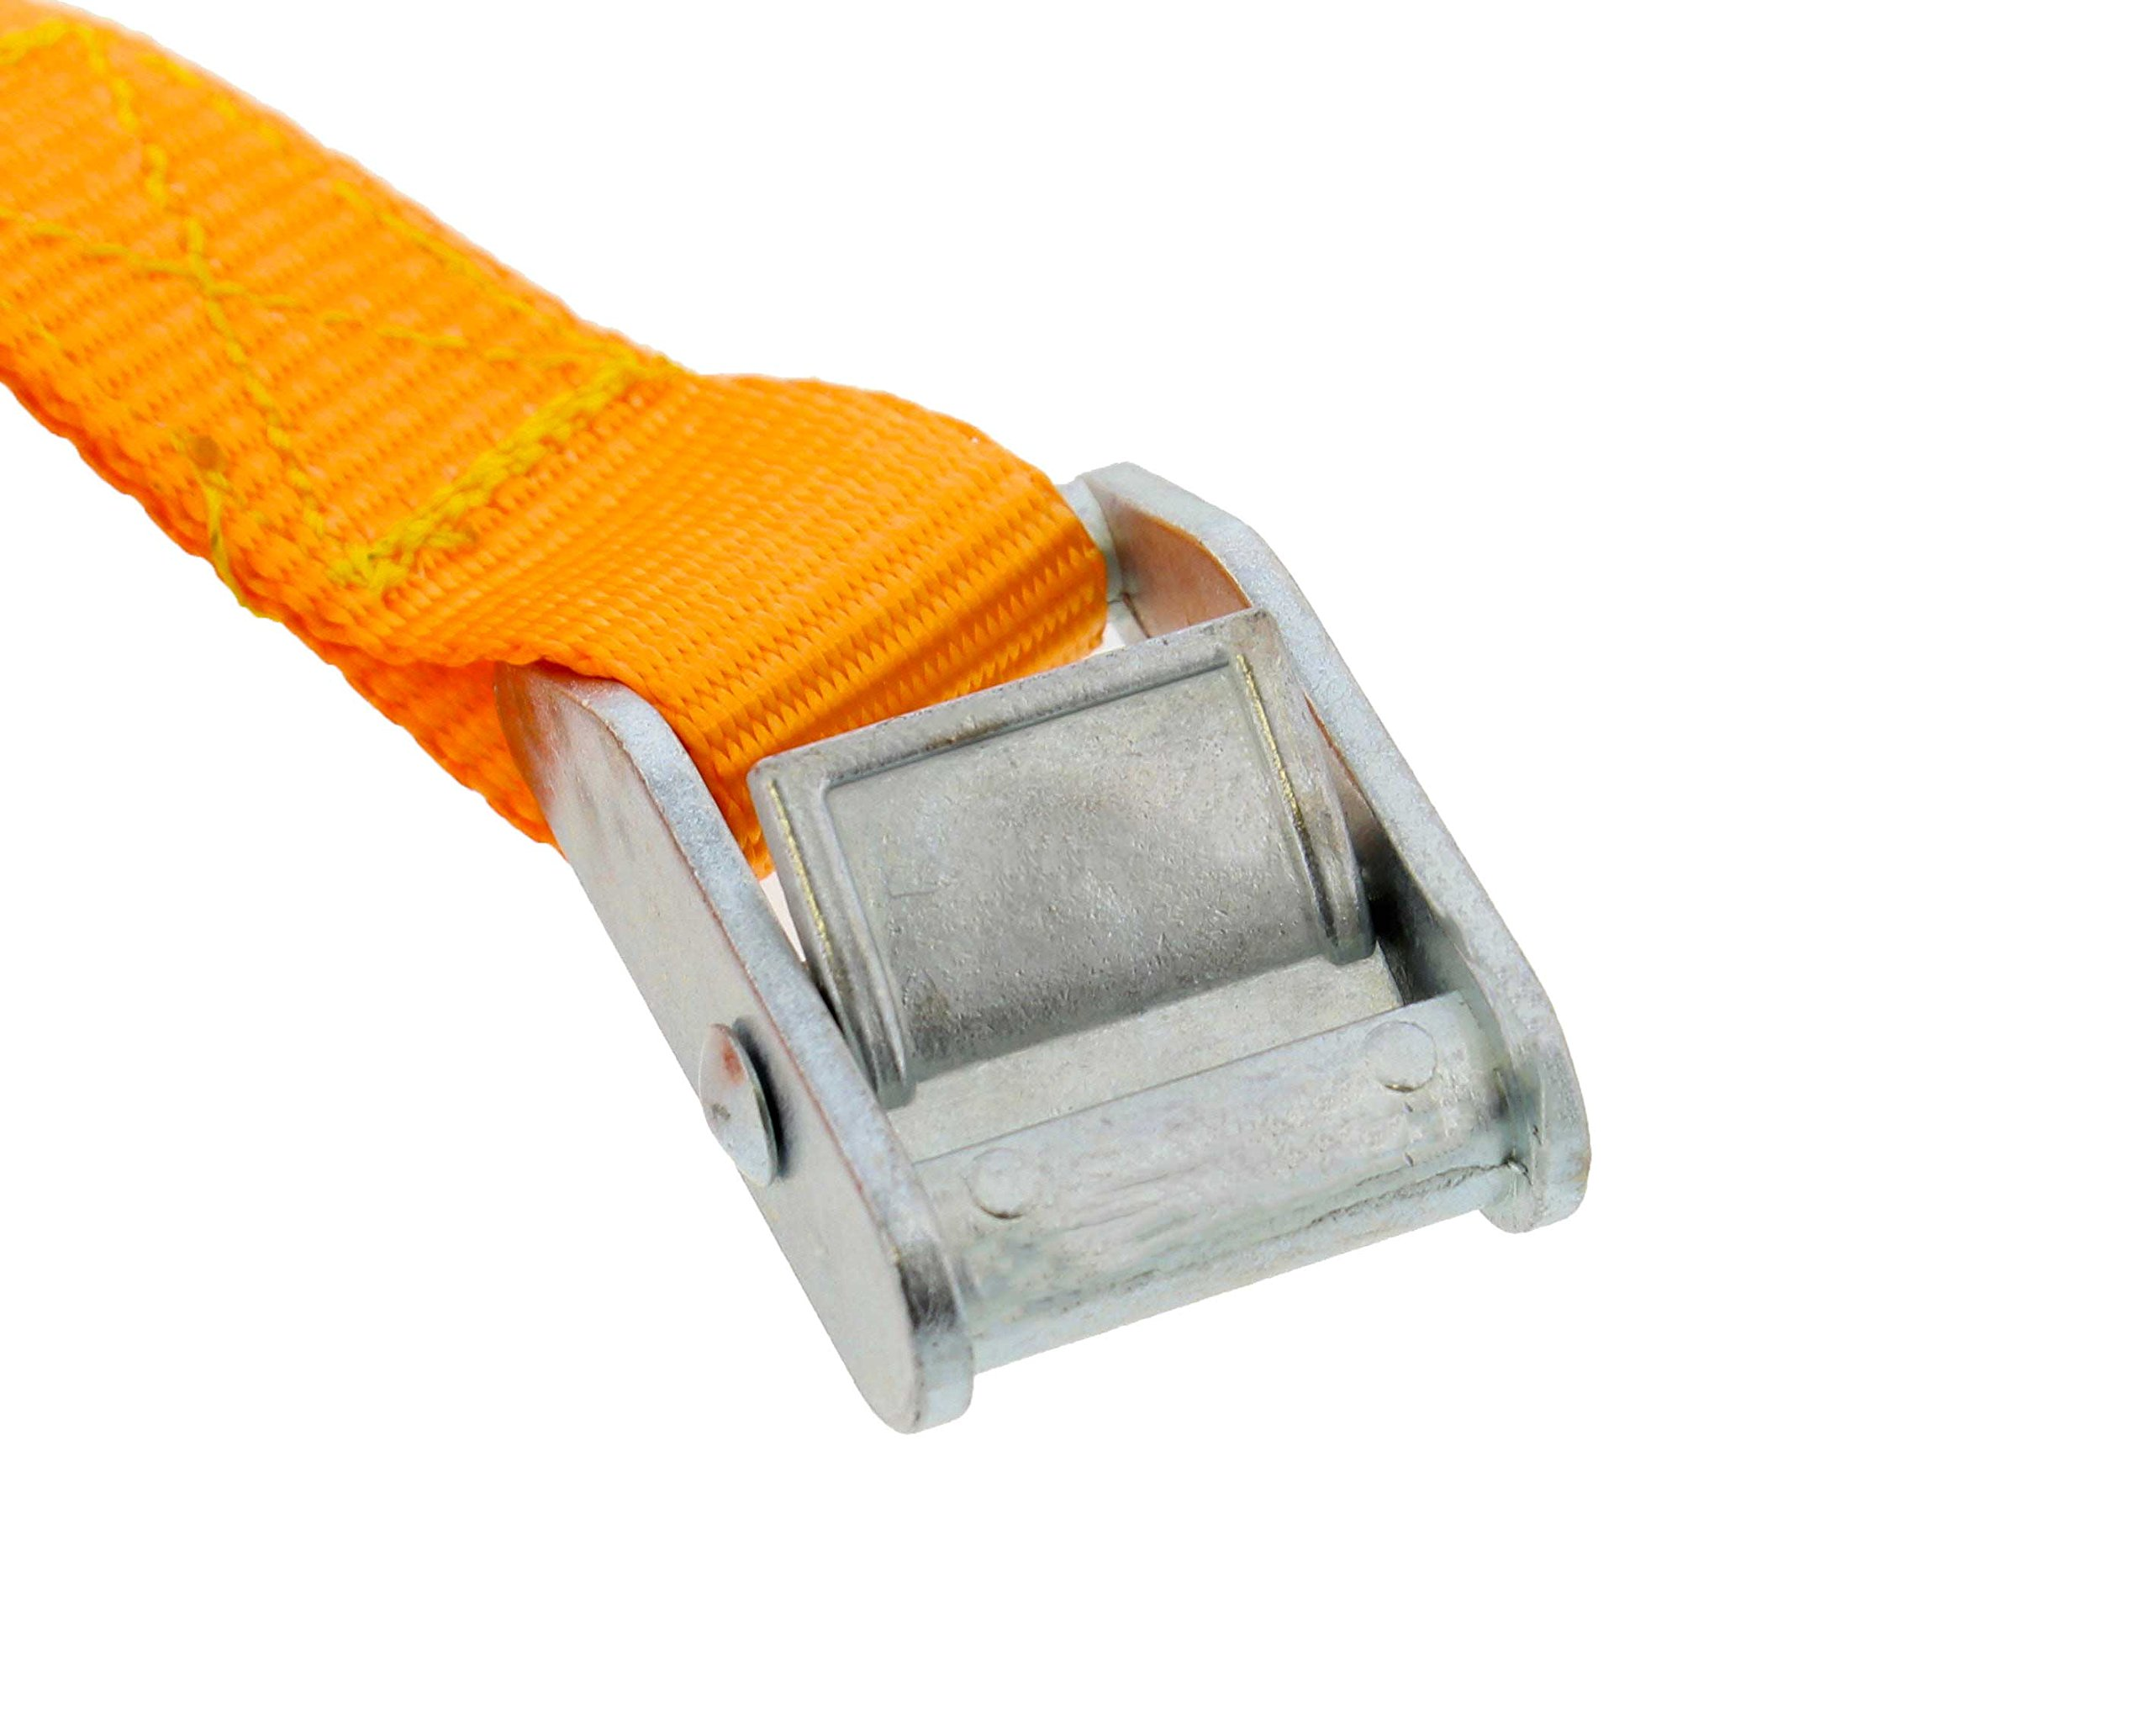 ABN Lashing Straps with Carry Bag 1'' Inch x 12'' Foot 10-Pack by ABN (Image #3)